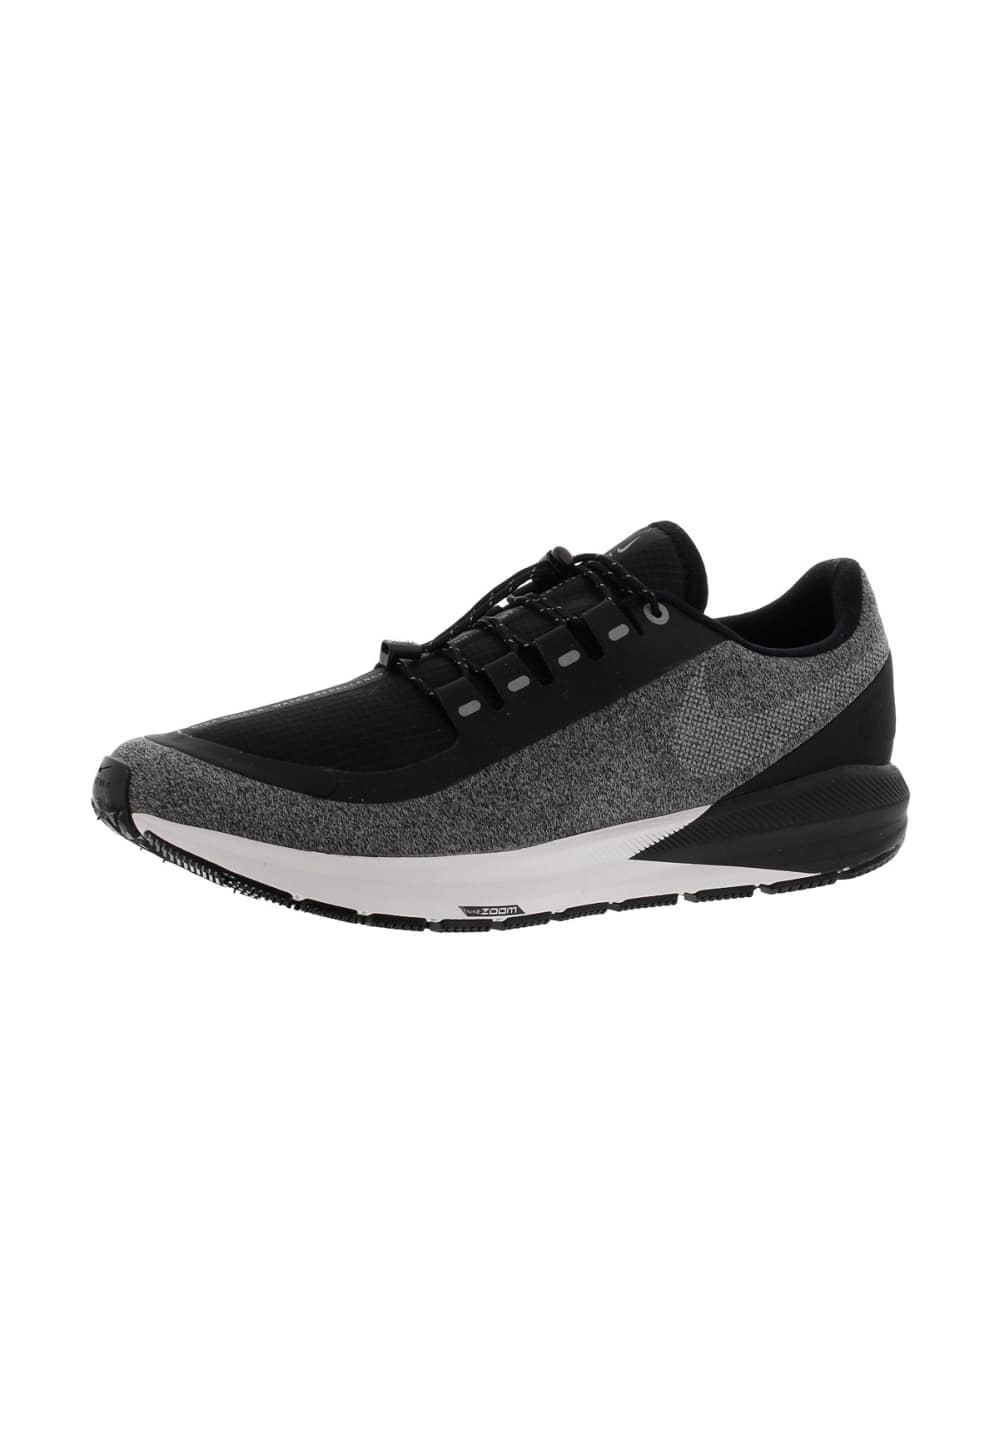 Next. -60%. Nike. Air Zoom Structure 22 Rn Shield - Running shoes ... 9a5f9c6d0